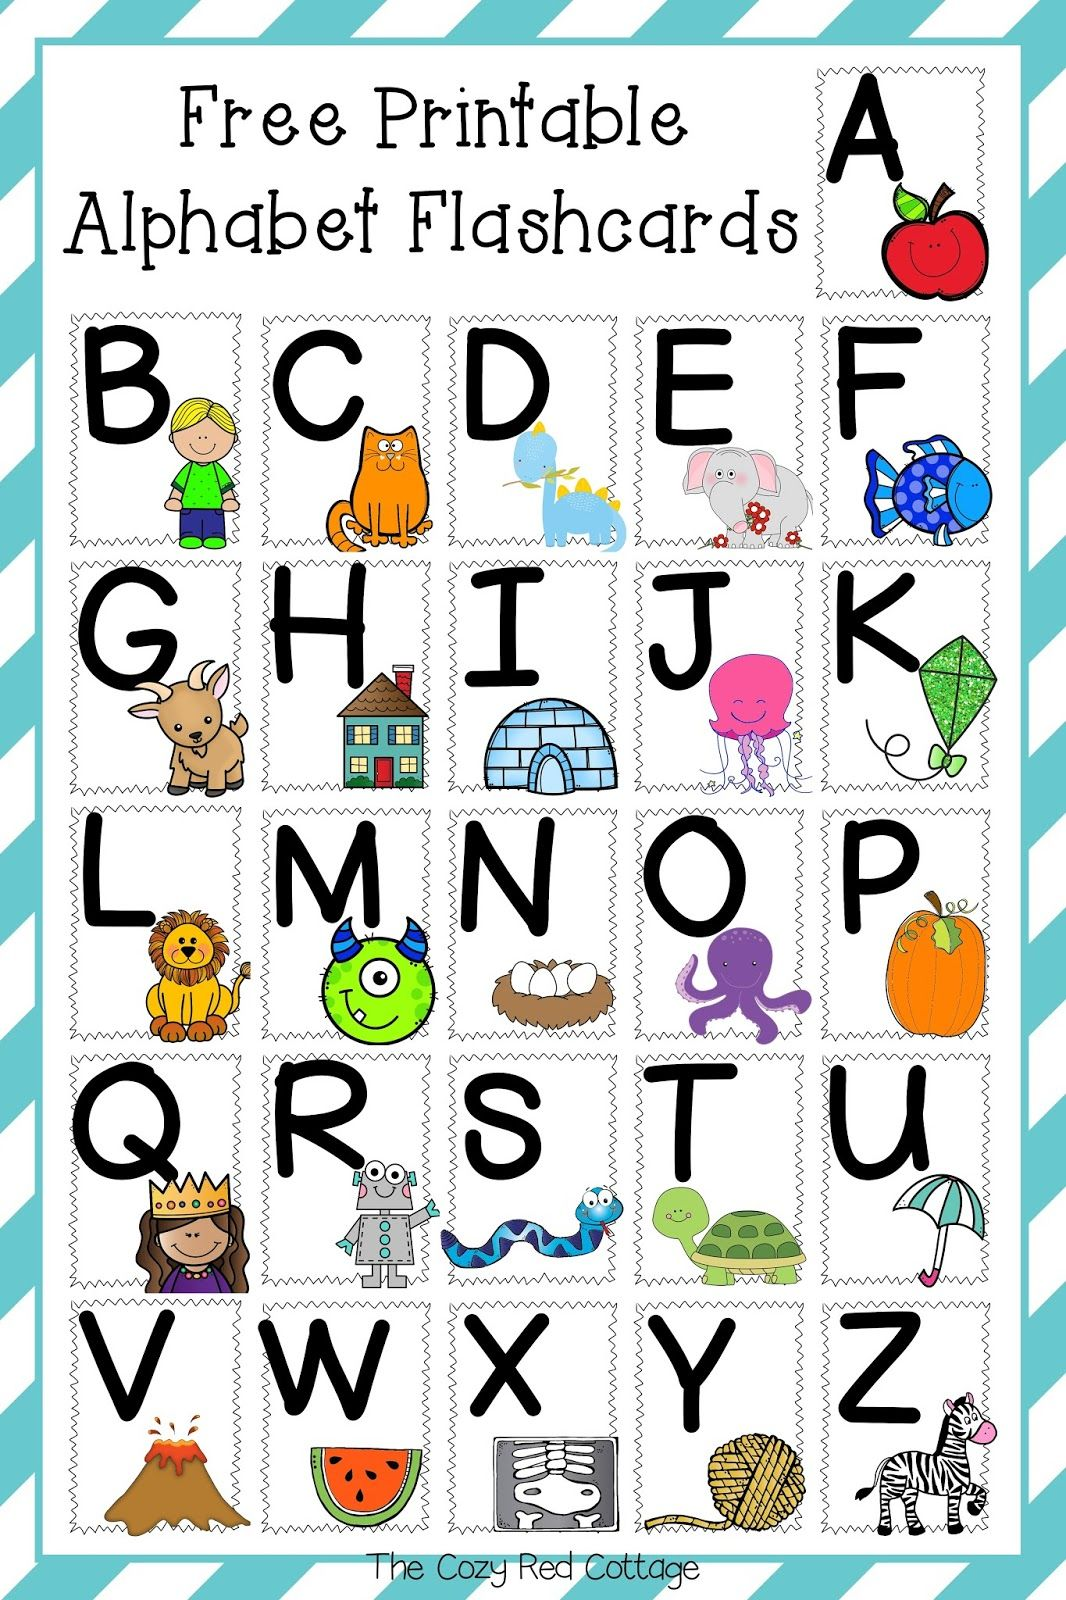 image relating to Printable Alphabet Flashcards titled Absolutely free Printable Alphabet Flashcards Parenting Free of charge